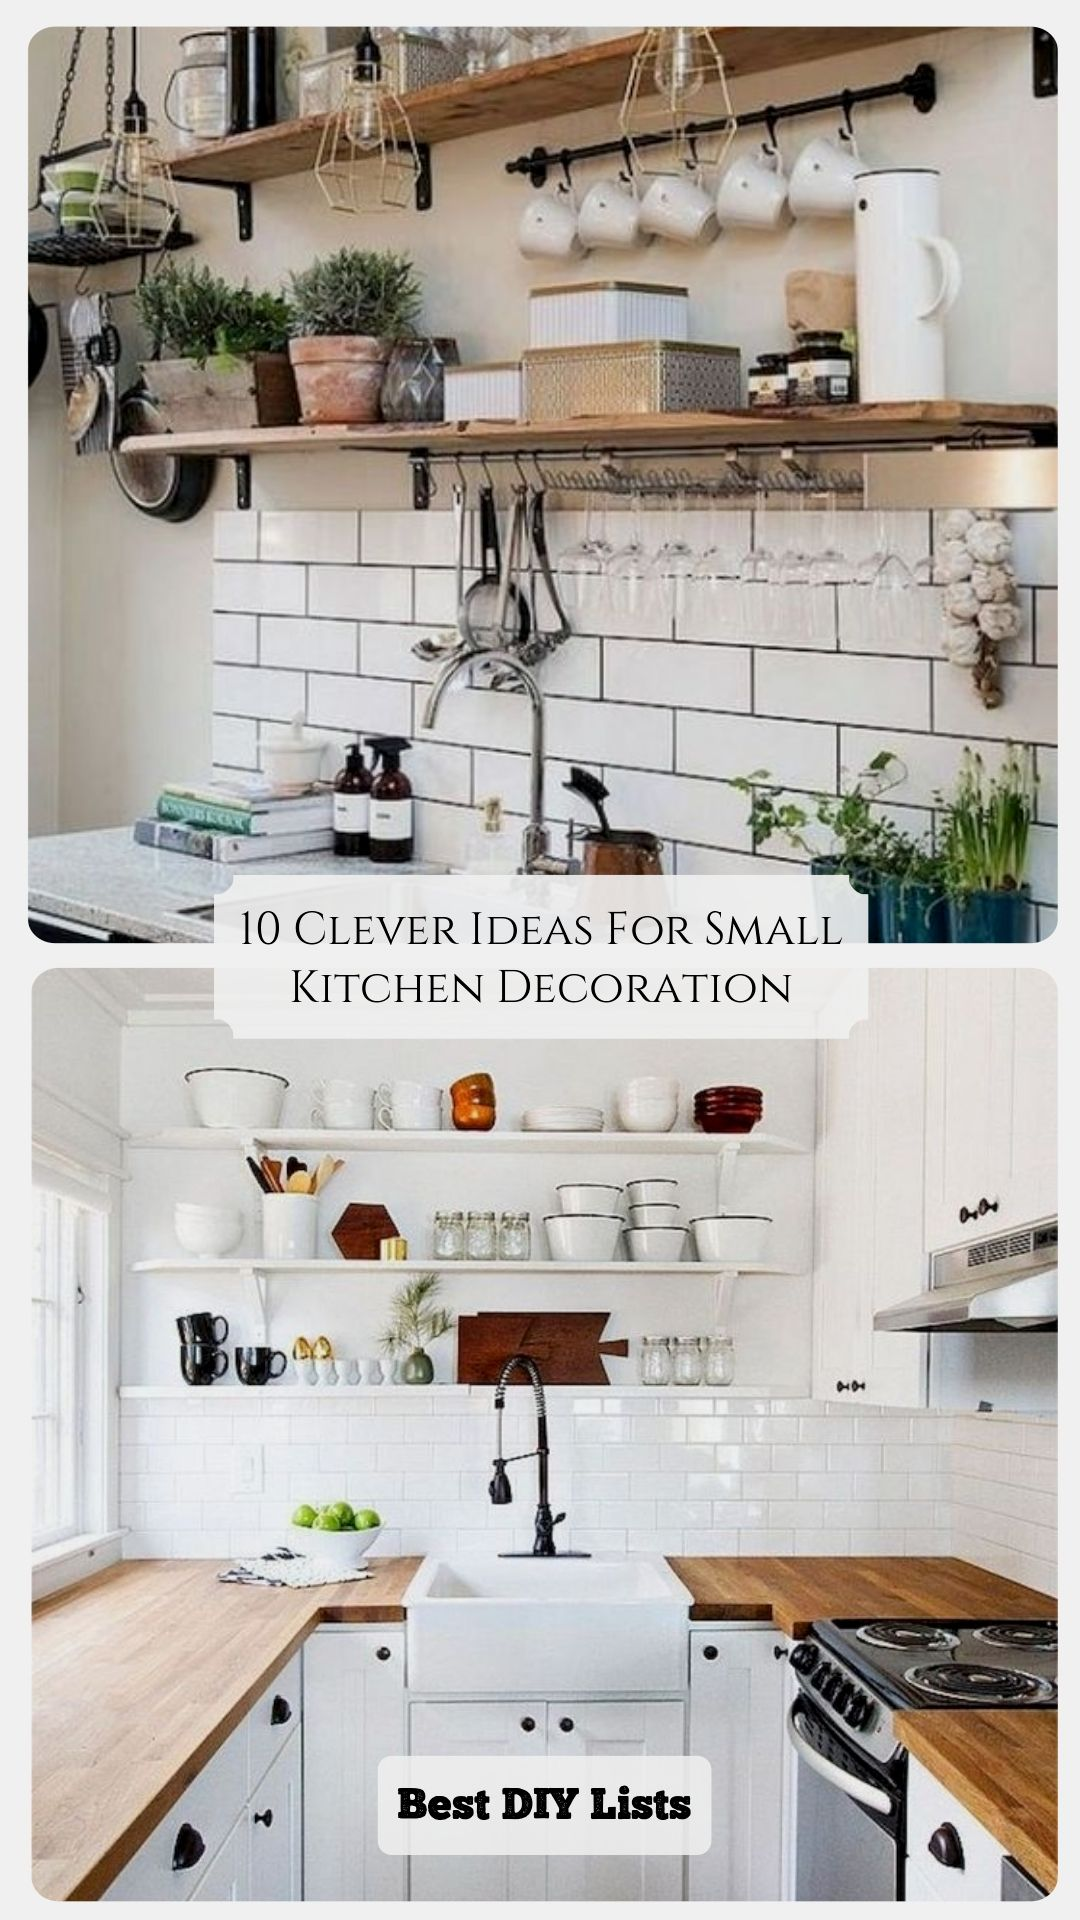 10 Clever Ideas For Small Kitchen Decoration In 2020 Home Decor Kitchen Home Decor Tips Home Remodeling